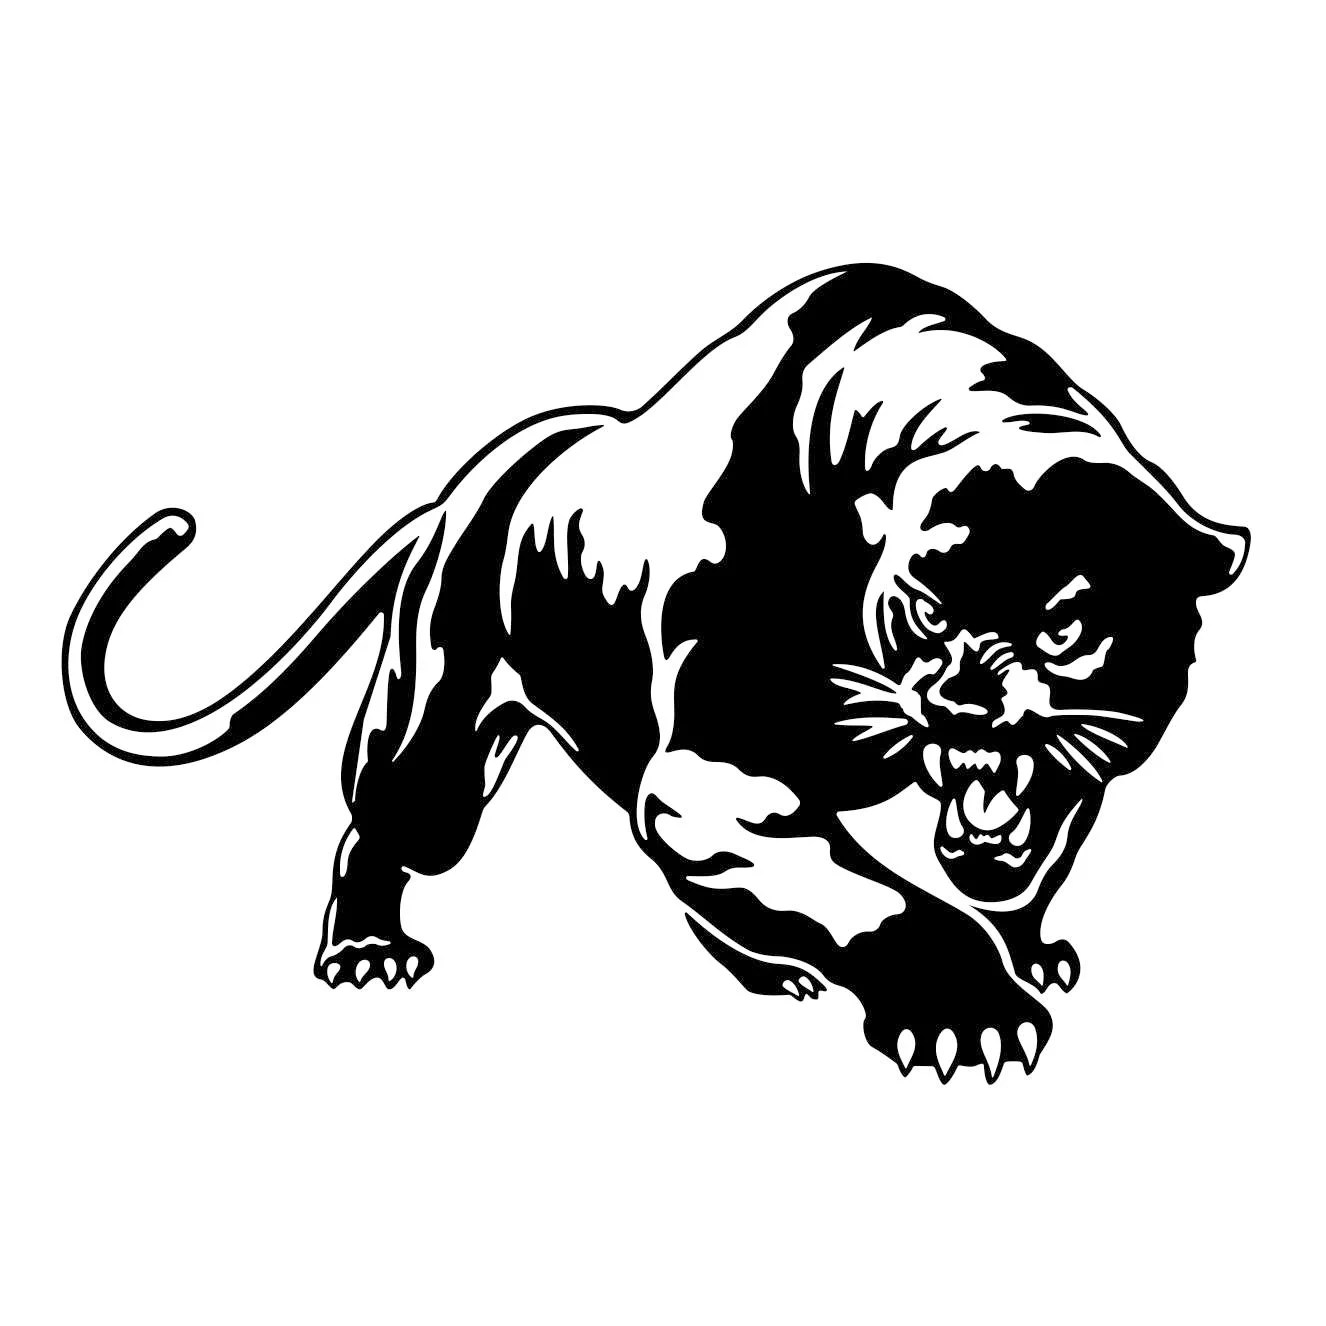 Puma Cougar Panther Graphics SVG Dxf EPS Png Cdr Ai Pdf